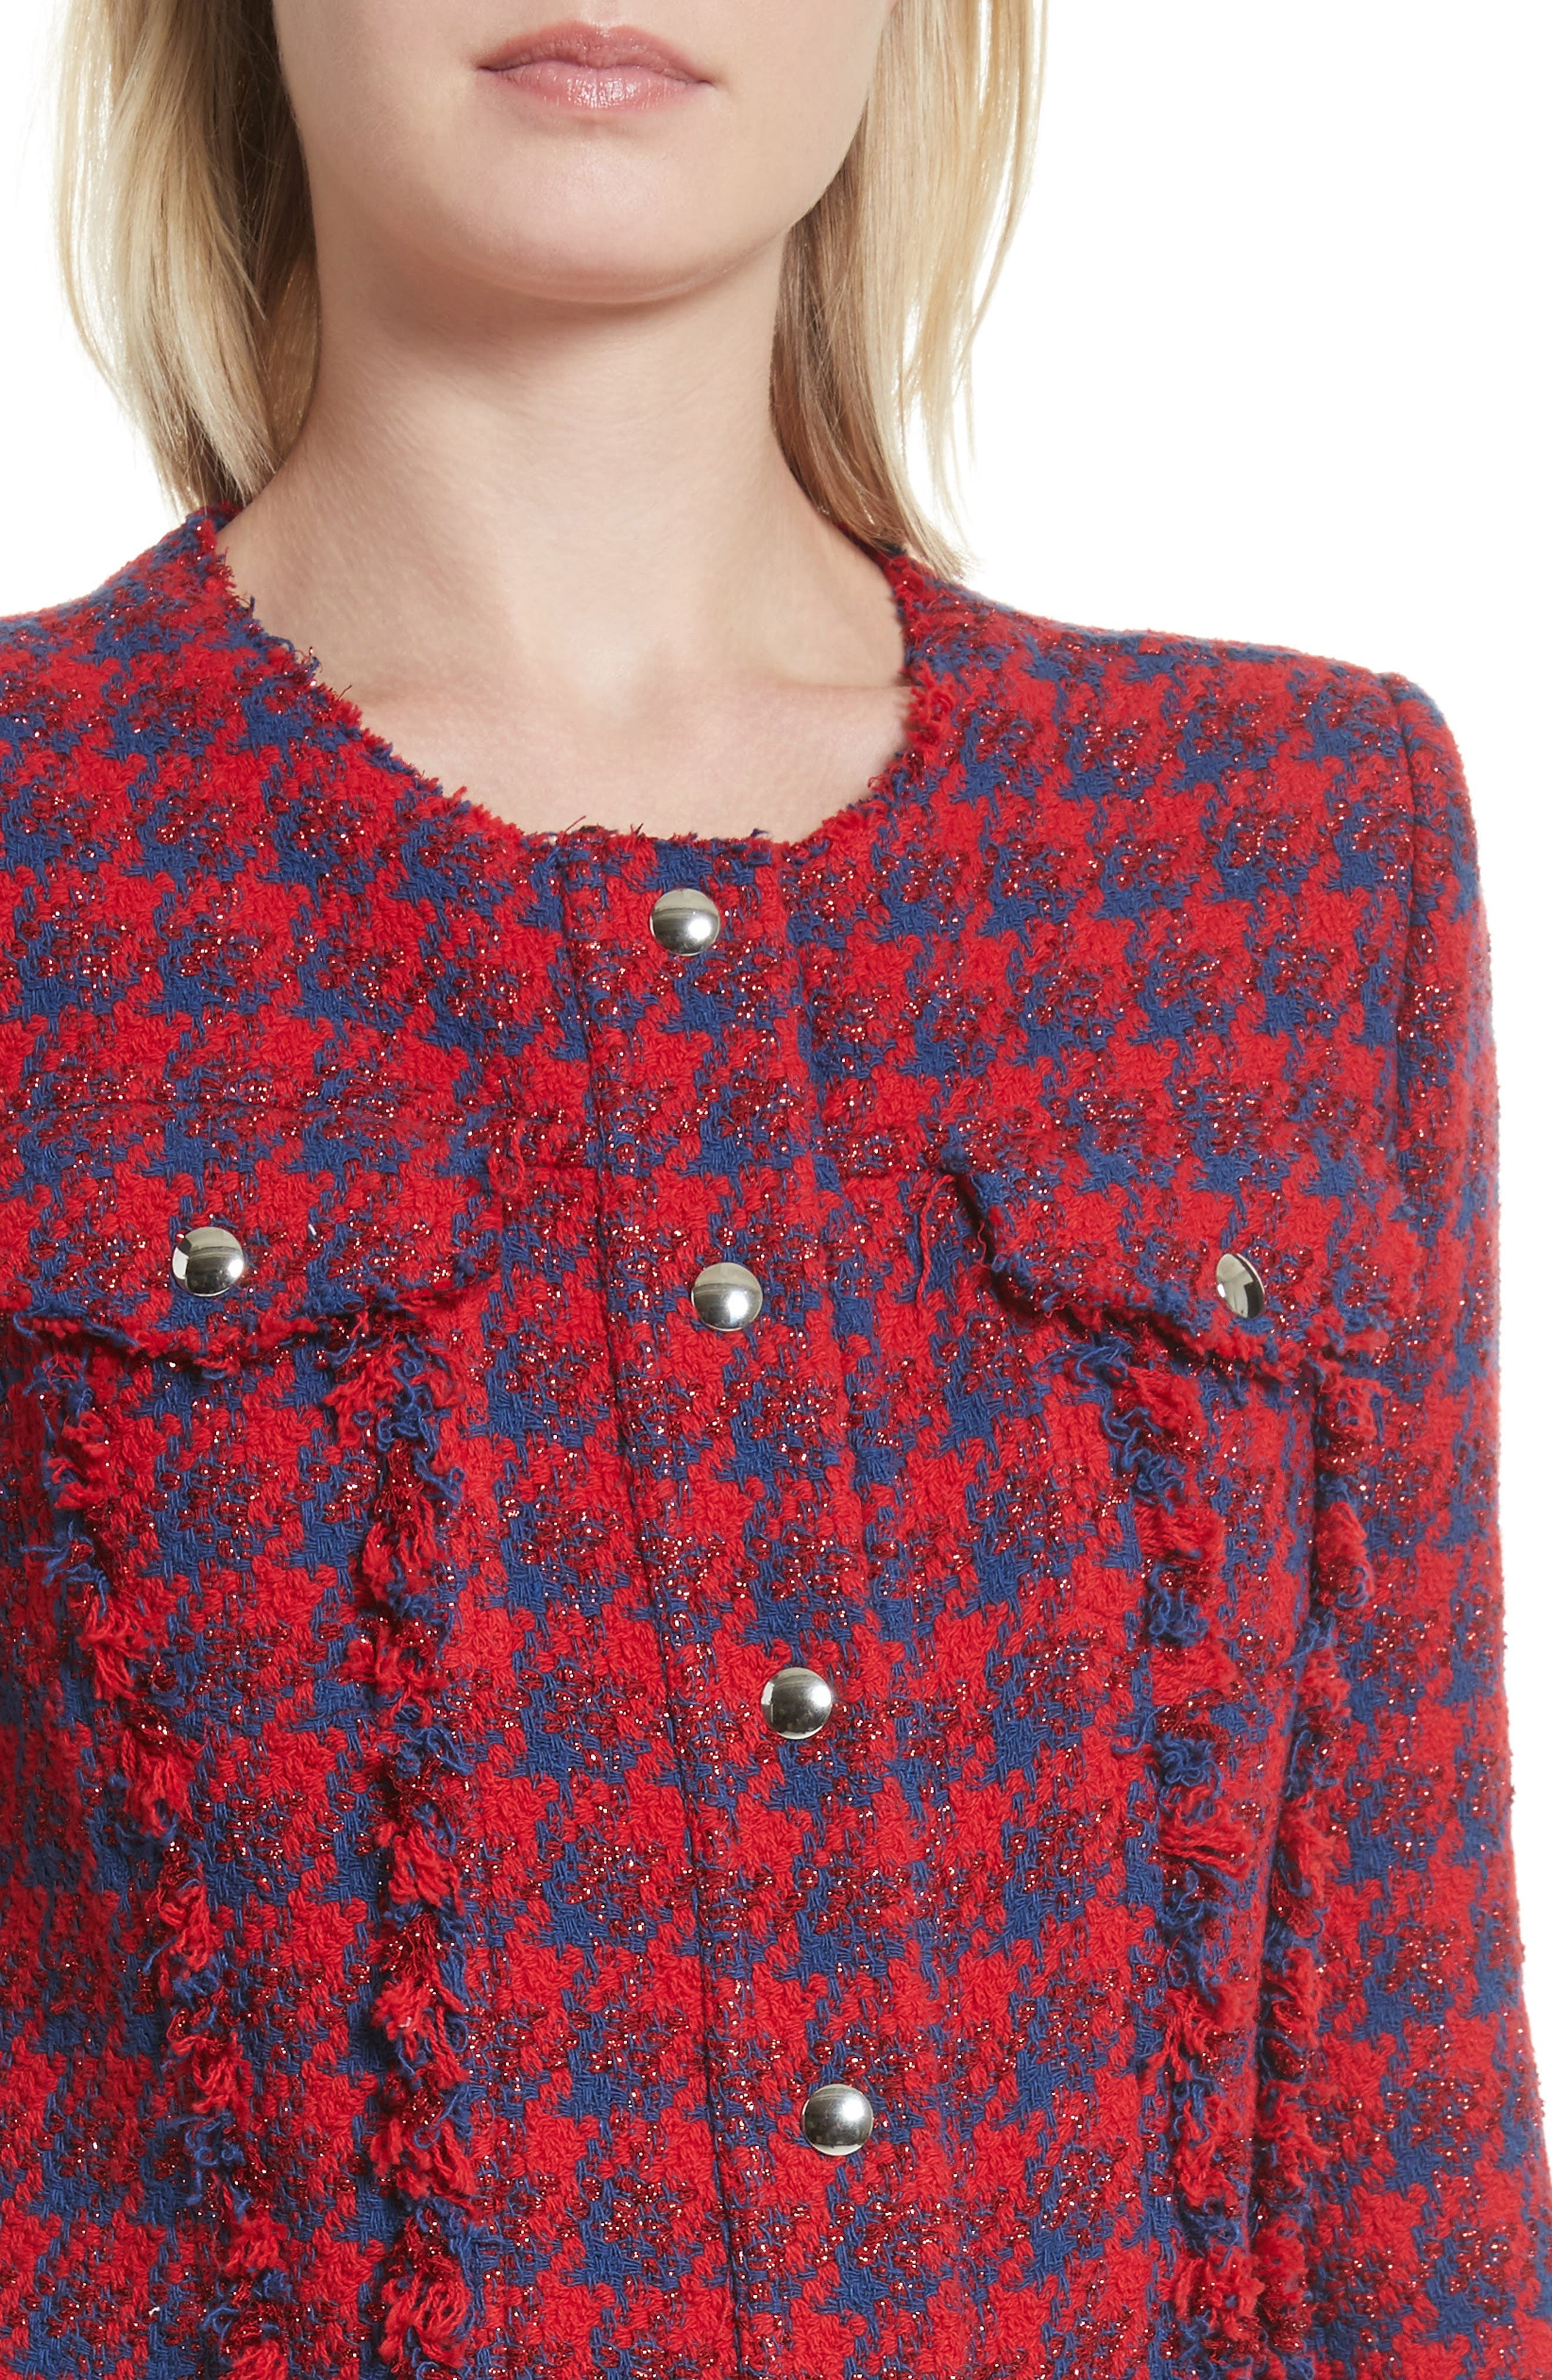 Quilombre Houndstooth Tweed Jacket,                             Alternate thumbnail 4, color,                             Red/ Blue